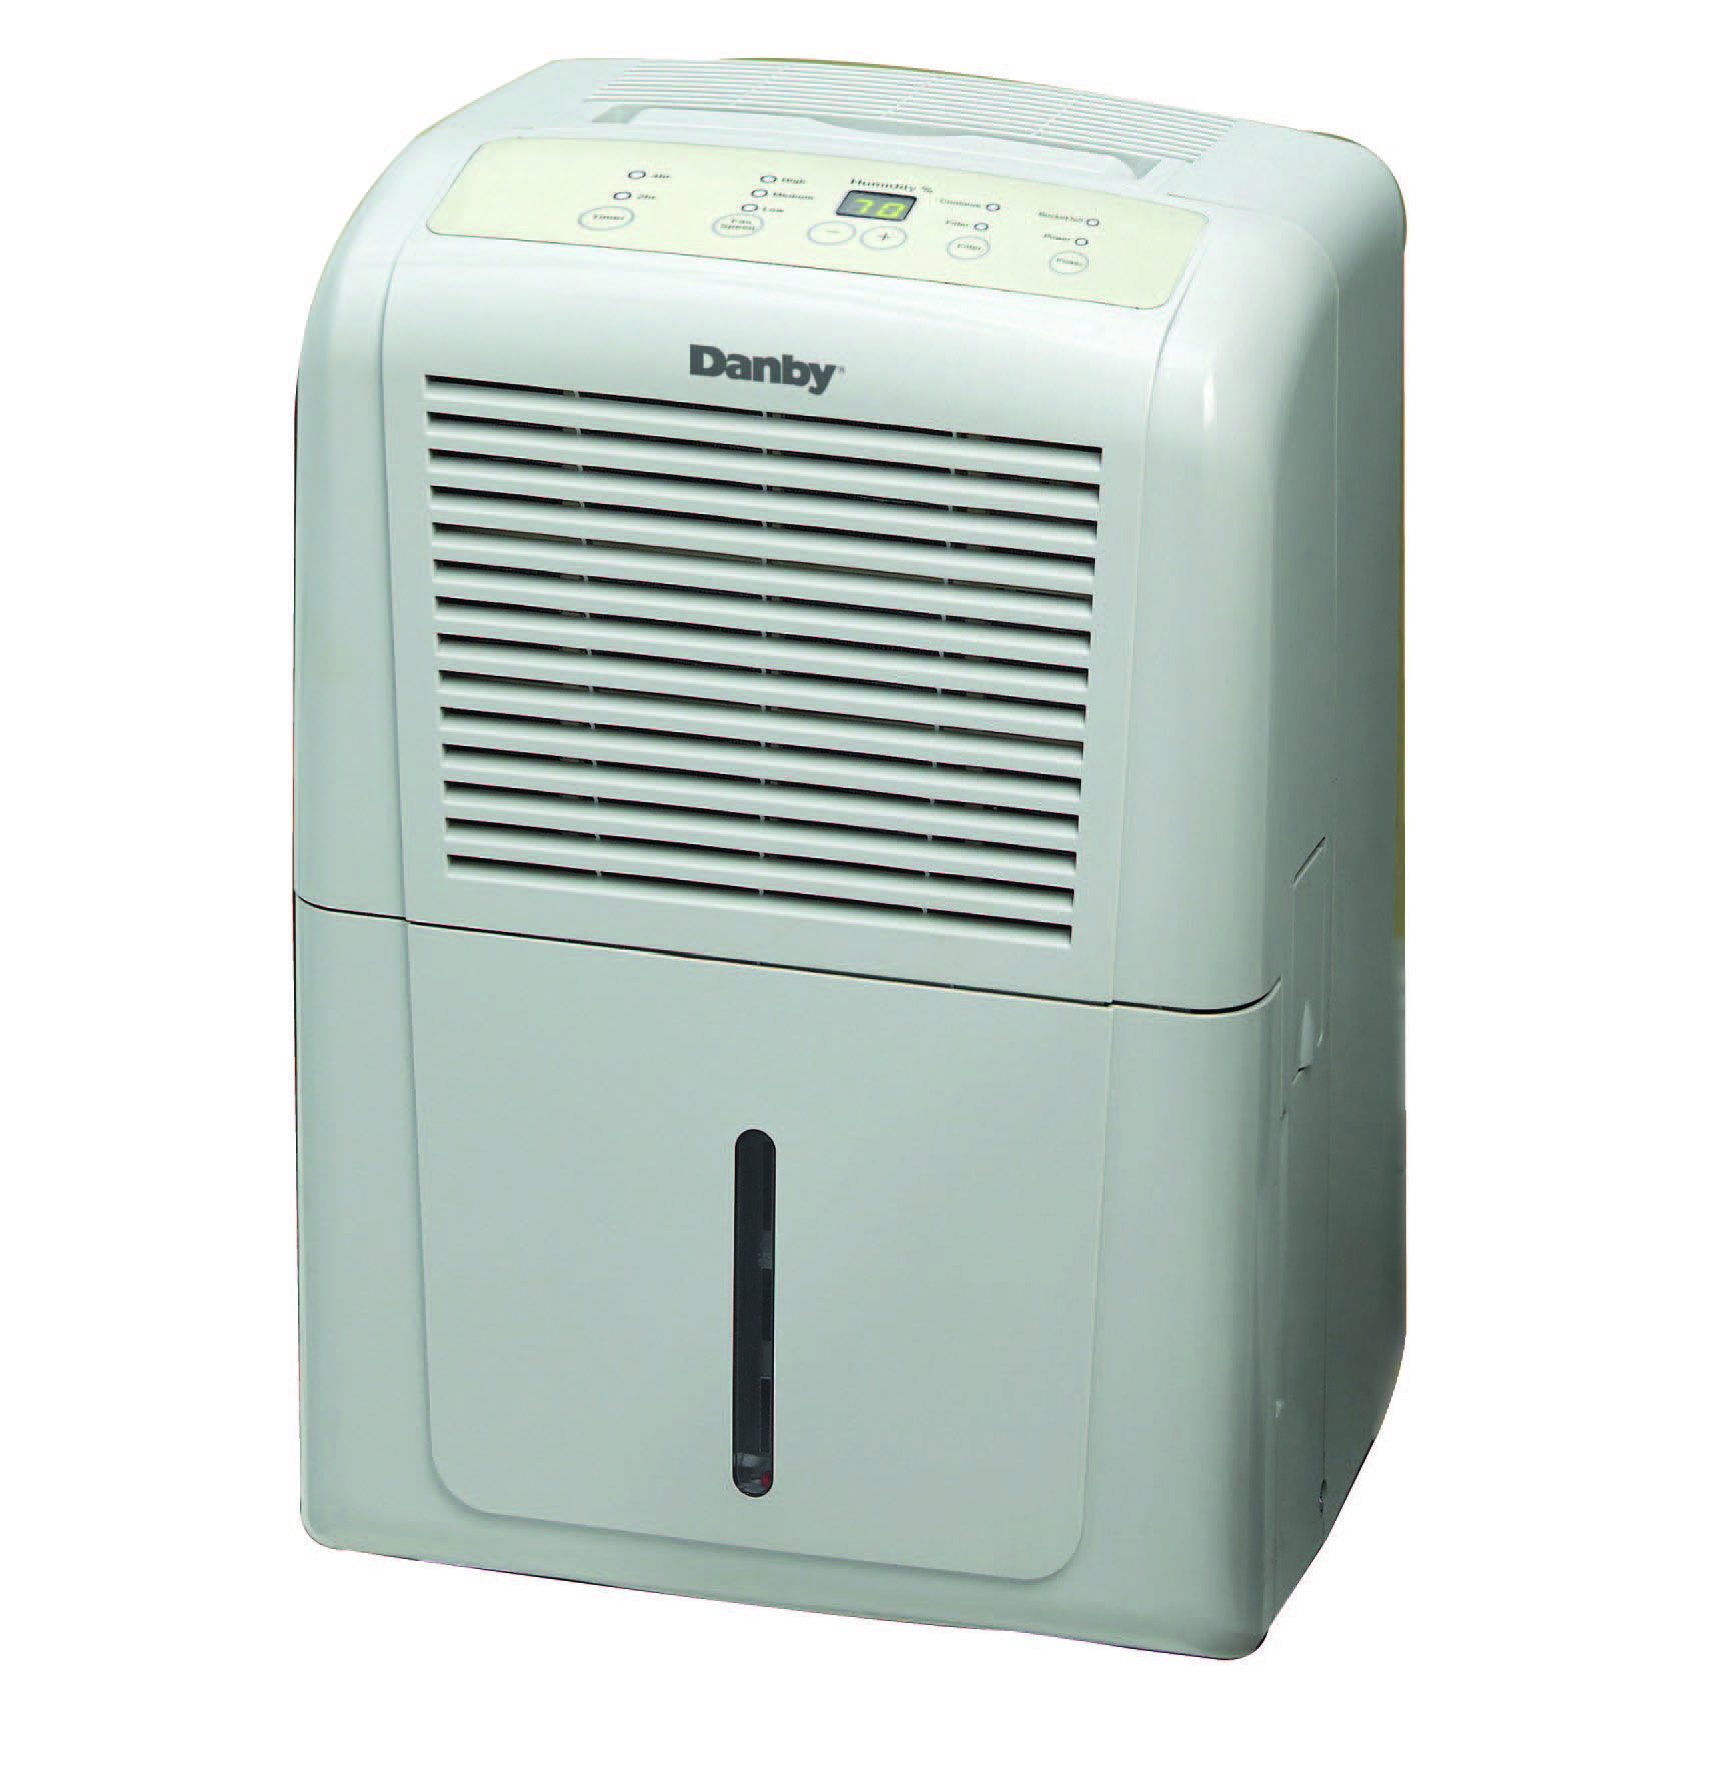 Gree Reannounces Dehumidifier Recall Following 450 Fires and